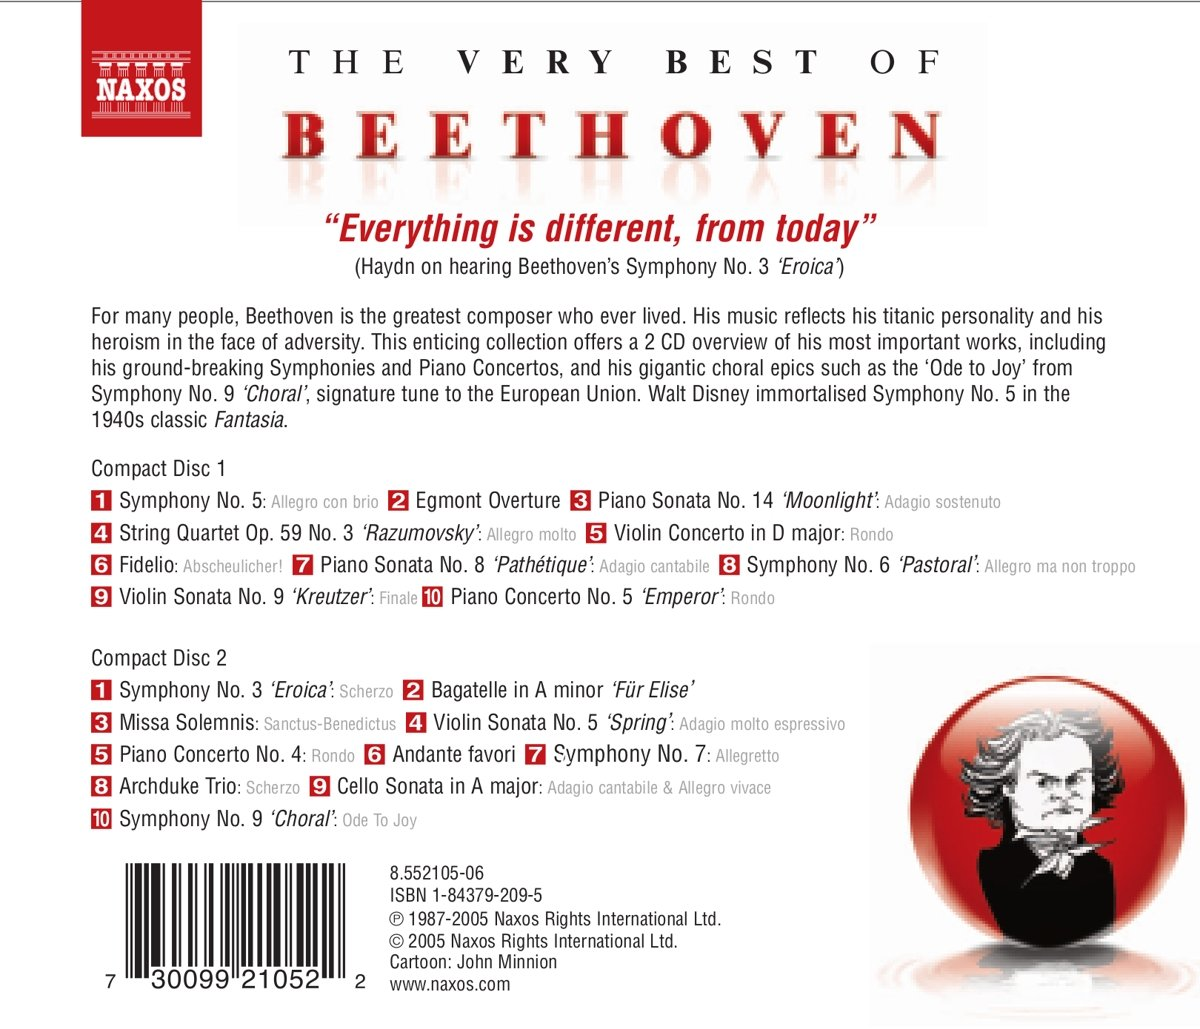 Very Best of Beethoven by CD